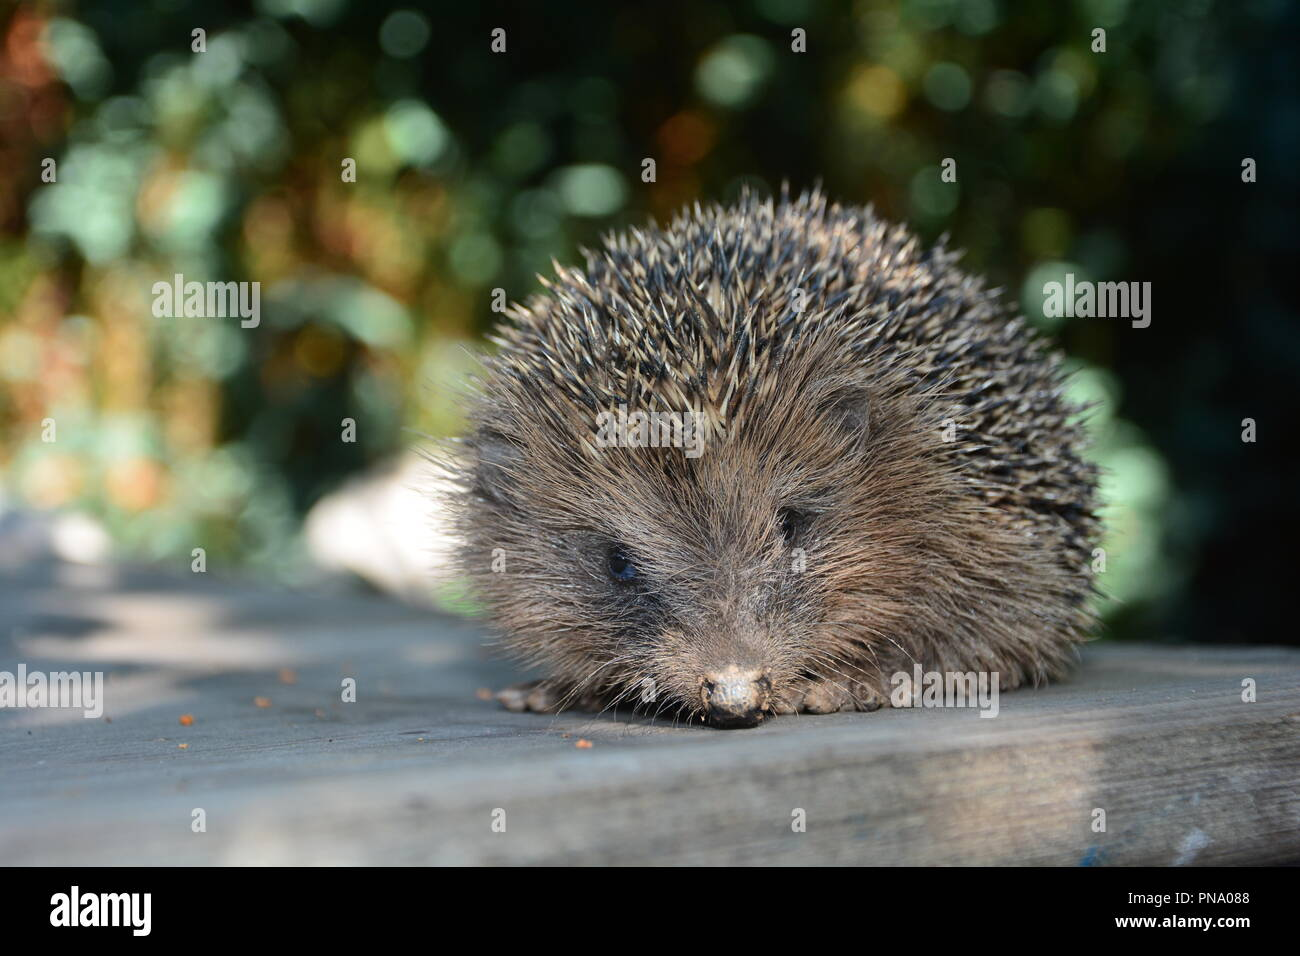 Hedgehog lie  on wood in front of green nature - Stock Image